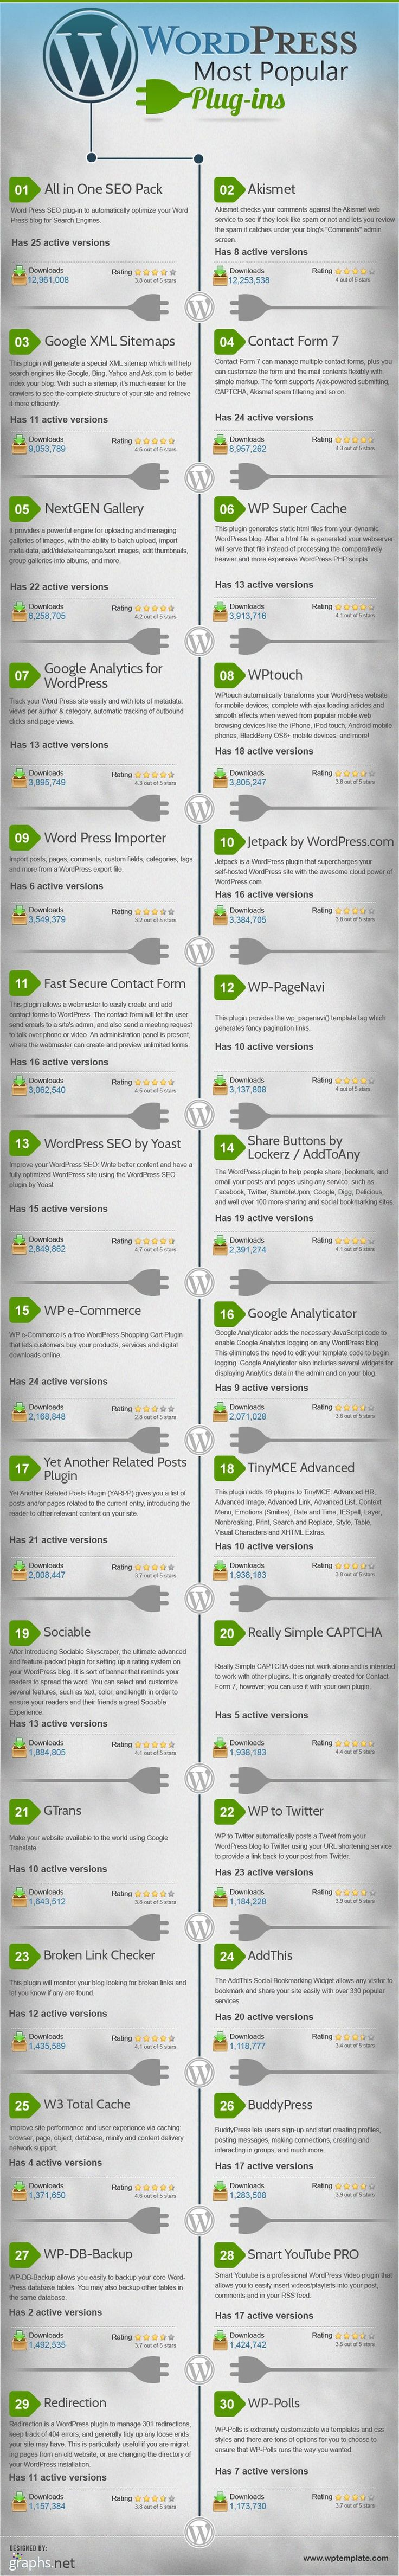 What Are 30 Most Popular Wordpress Plugins? #infographic